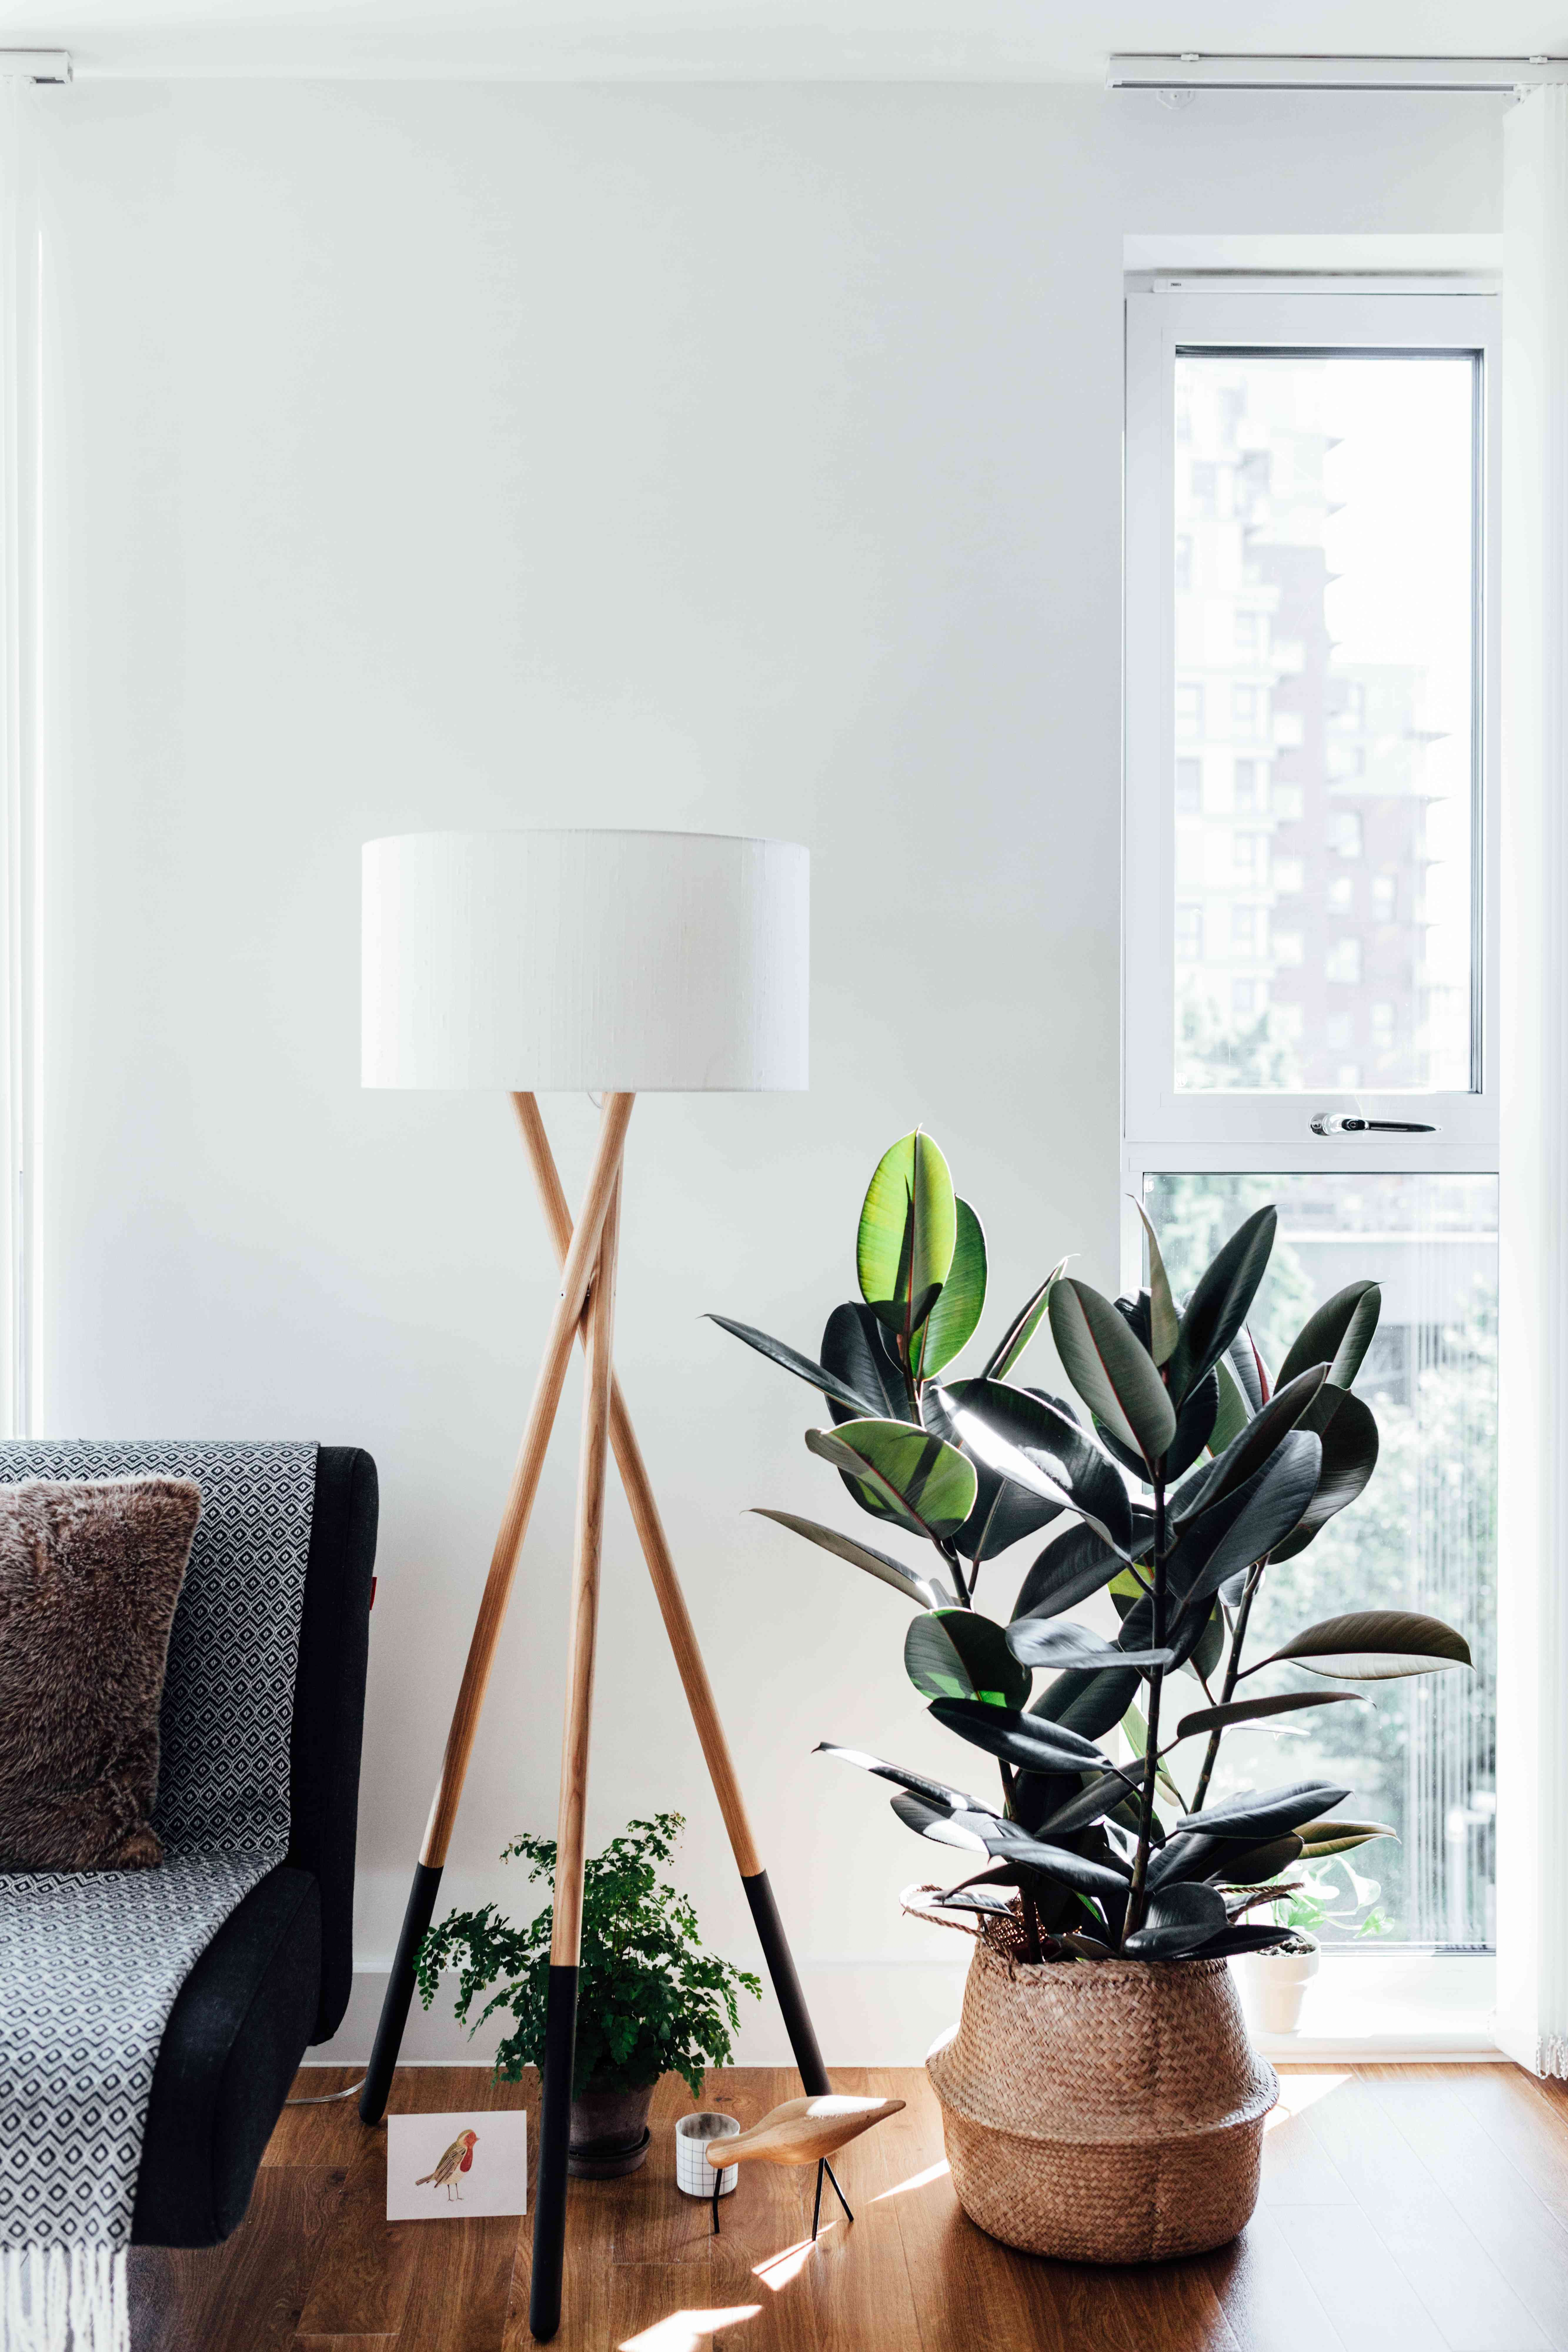 A corner of a stylish living room with a rubber tree.